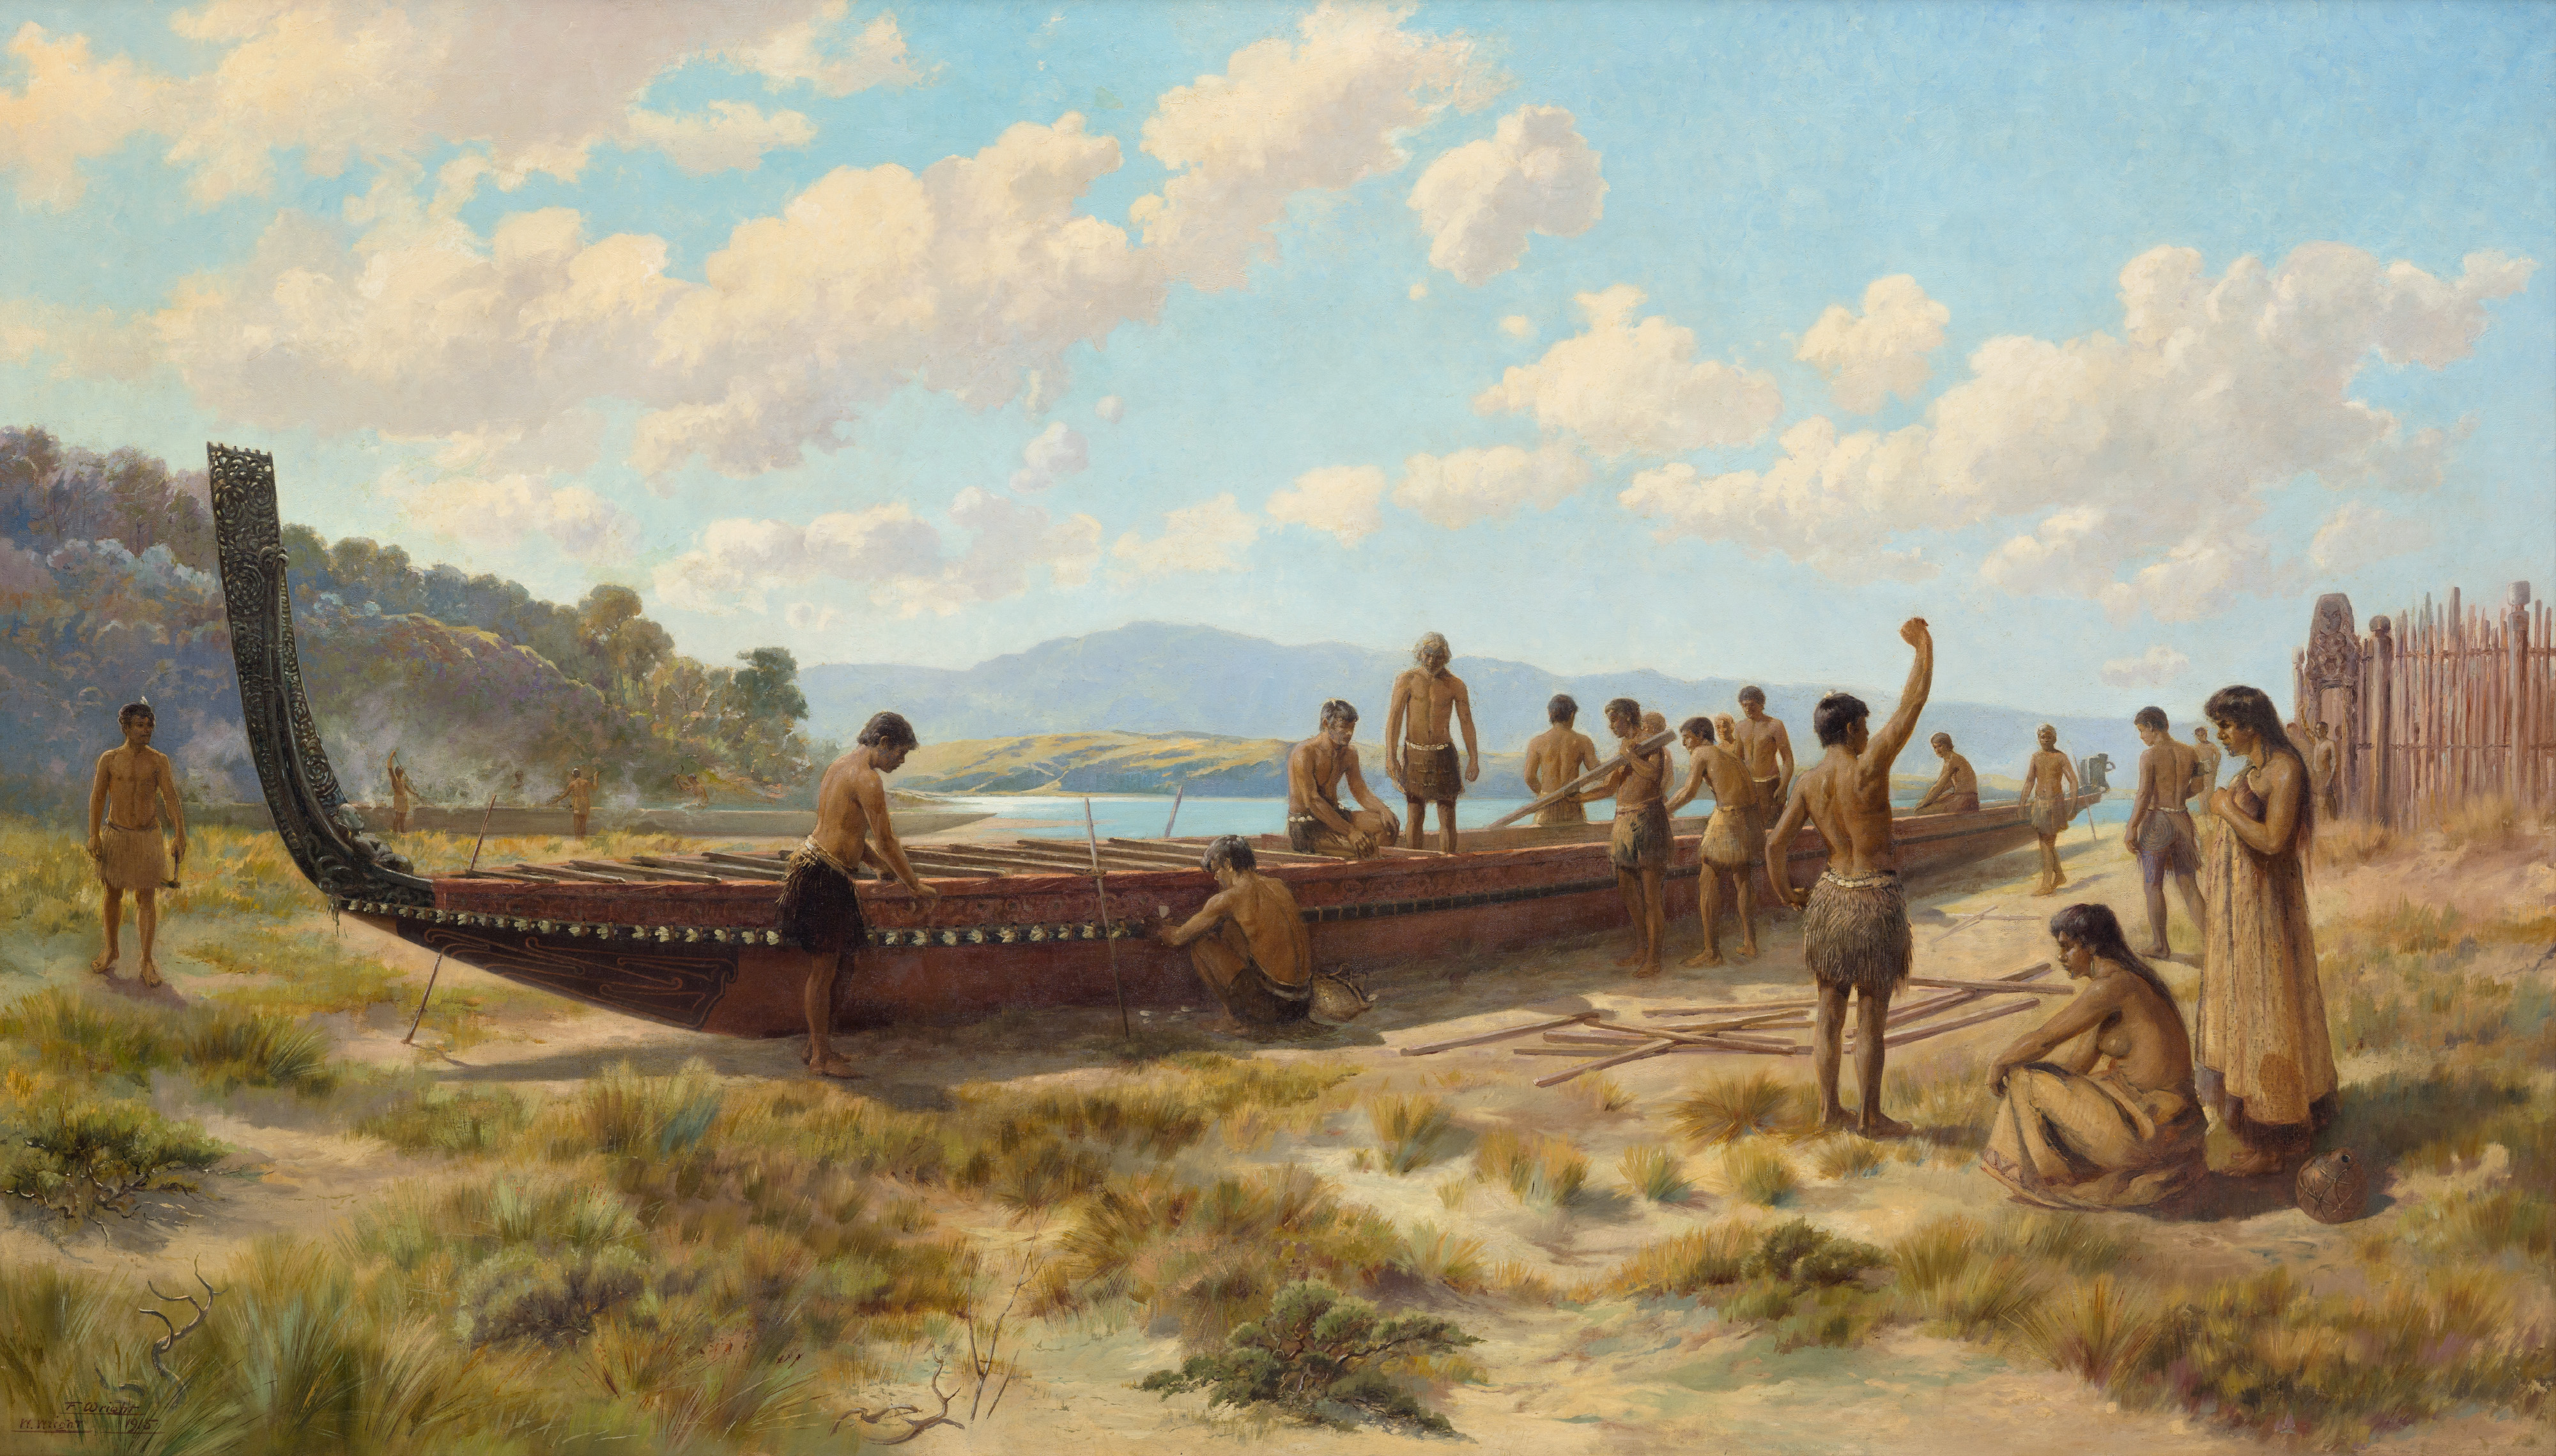 THE CANOE BUILDERS; OIL ON CANVAS; FRANK WRIGHT, WALTER WRIGHT. COURTESY OF AUCKLAND ART GALLERY